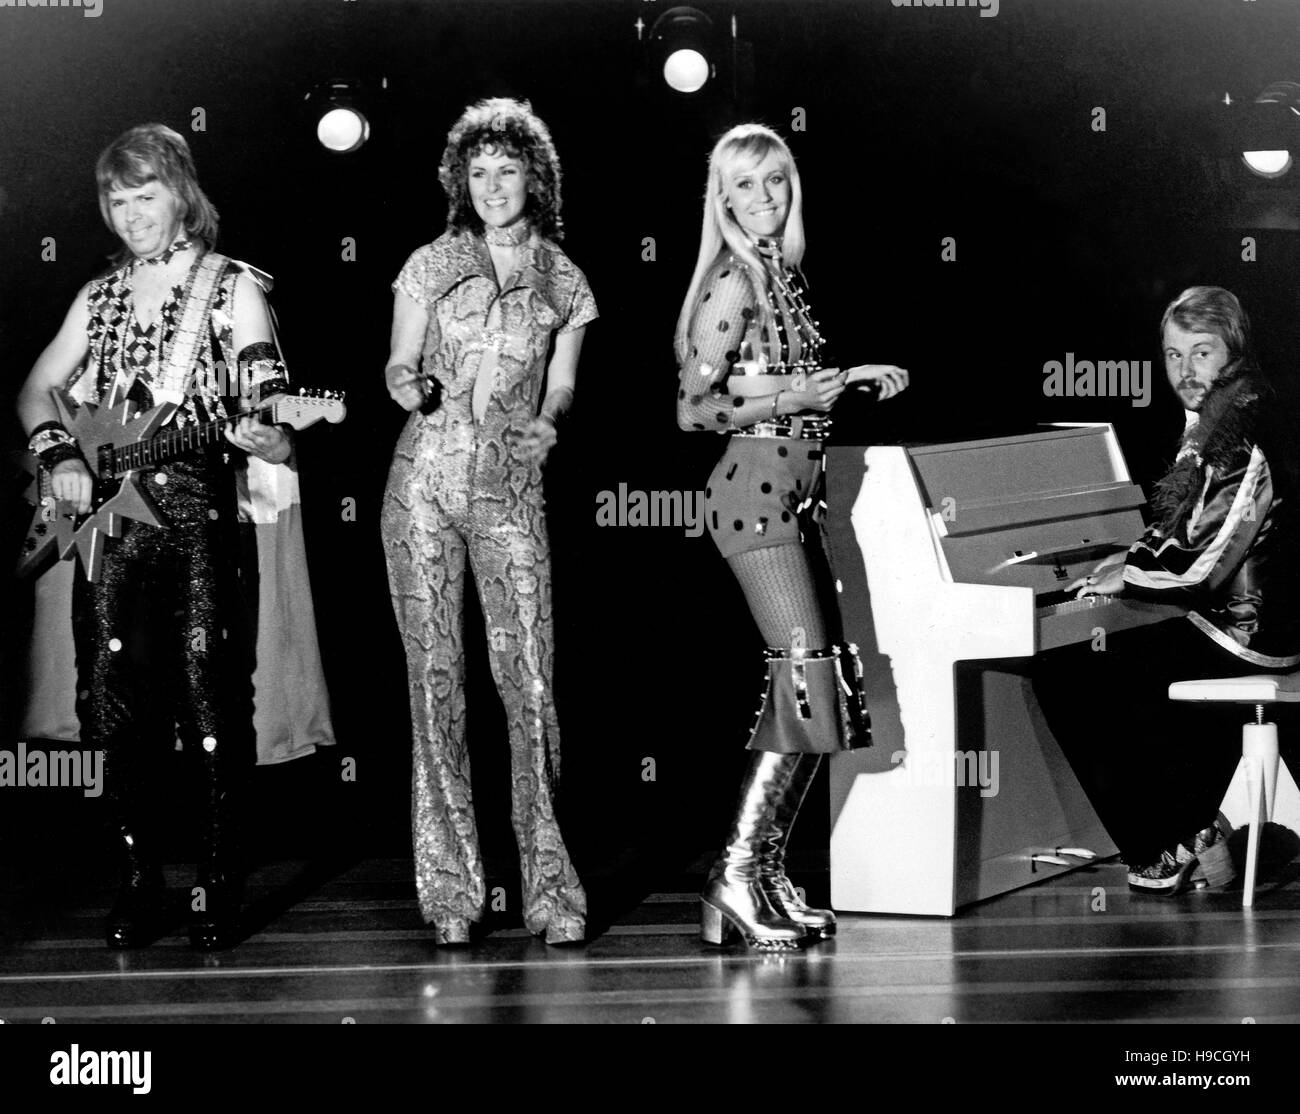 Anni Frid Lyngstad Black and White Stock Photos & Images - Alamy